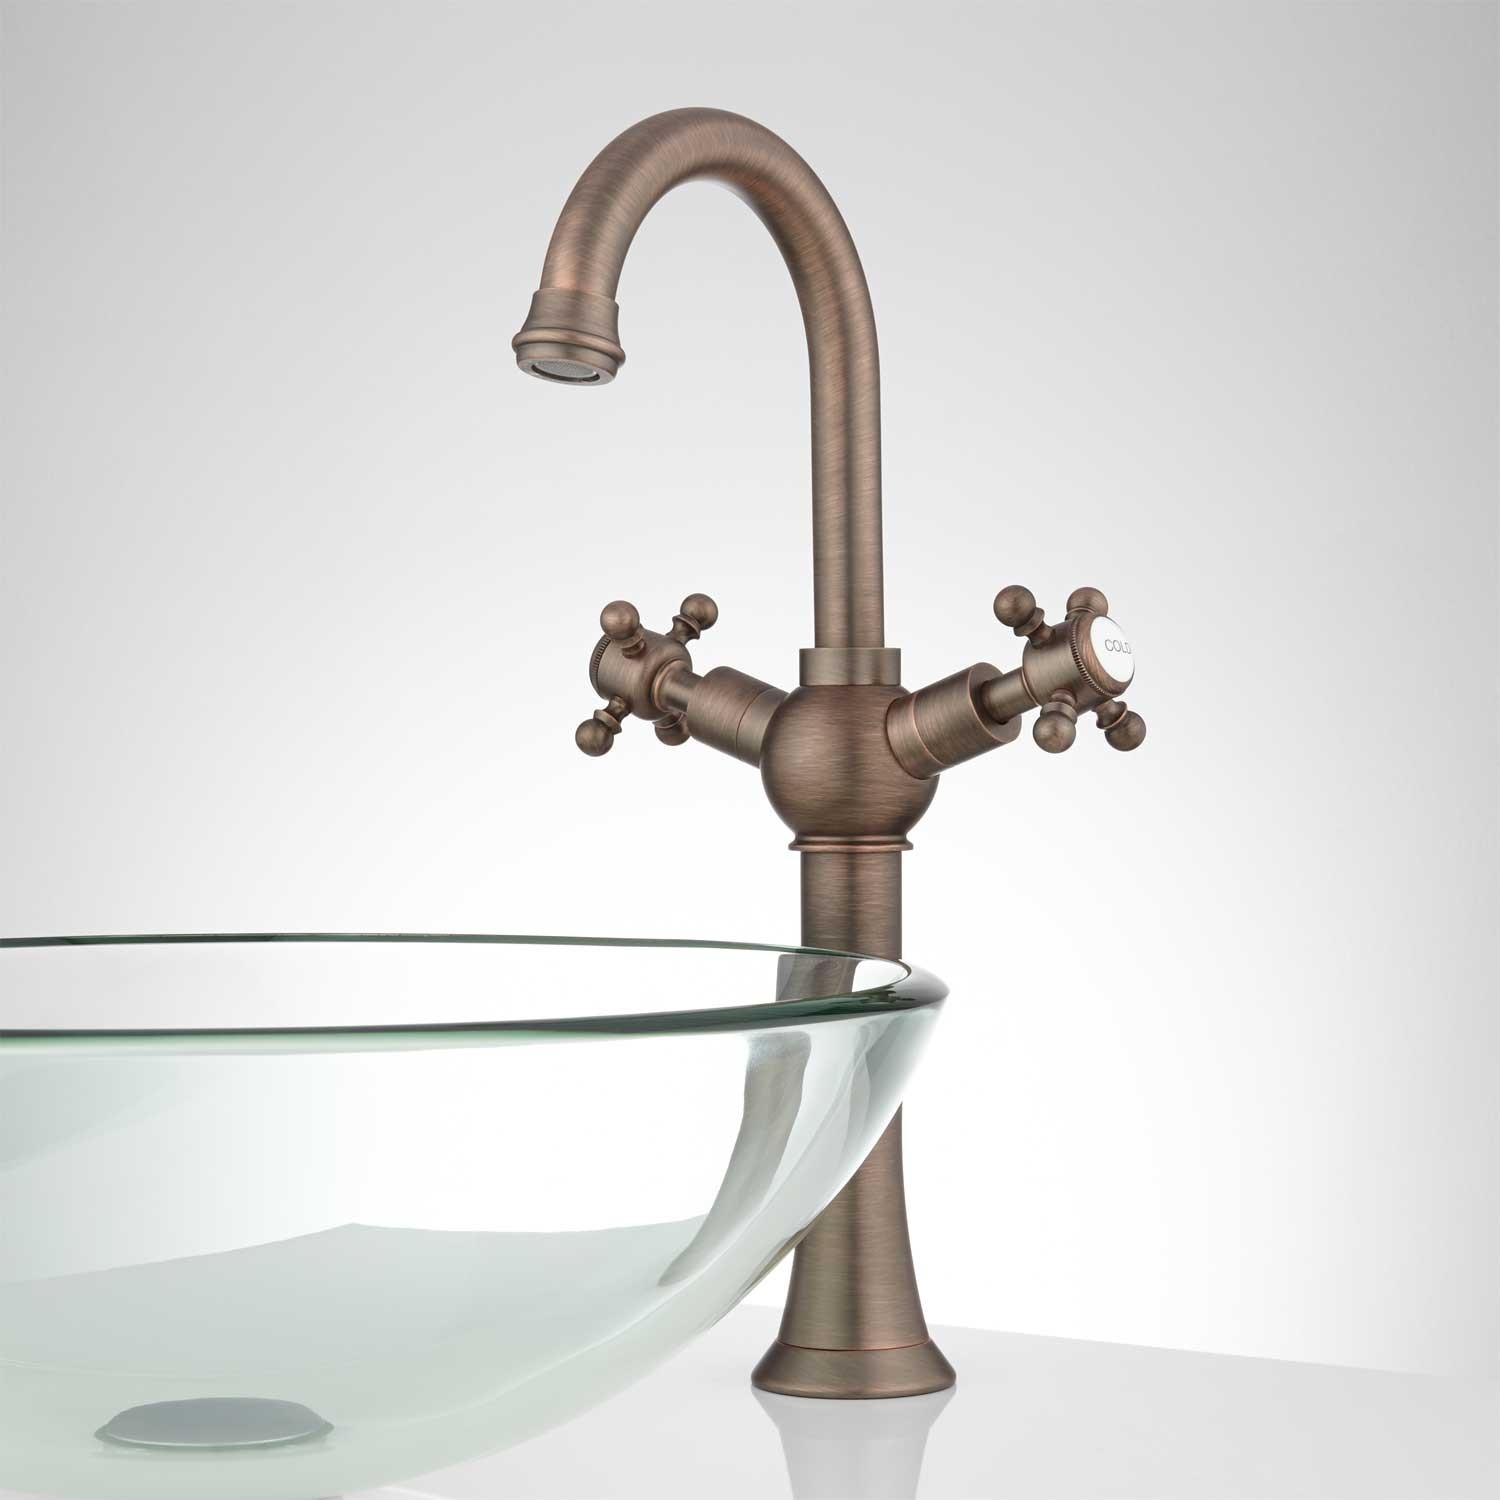 faucets for vessel sinks bronze faucets for vessel sinks bronze tailou single hole vessel faucet bathroom 1500 x 1500